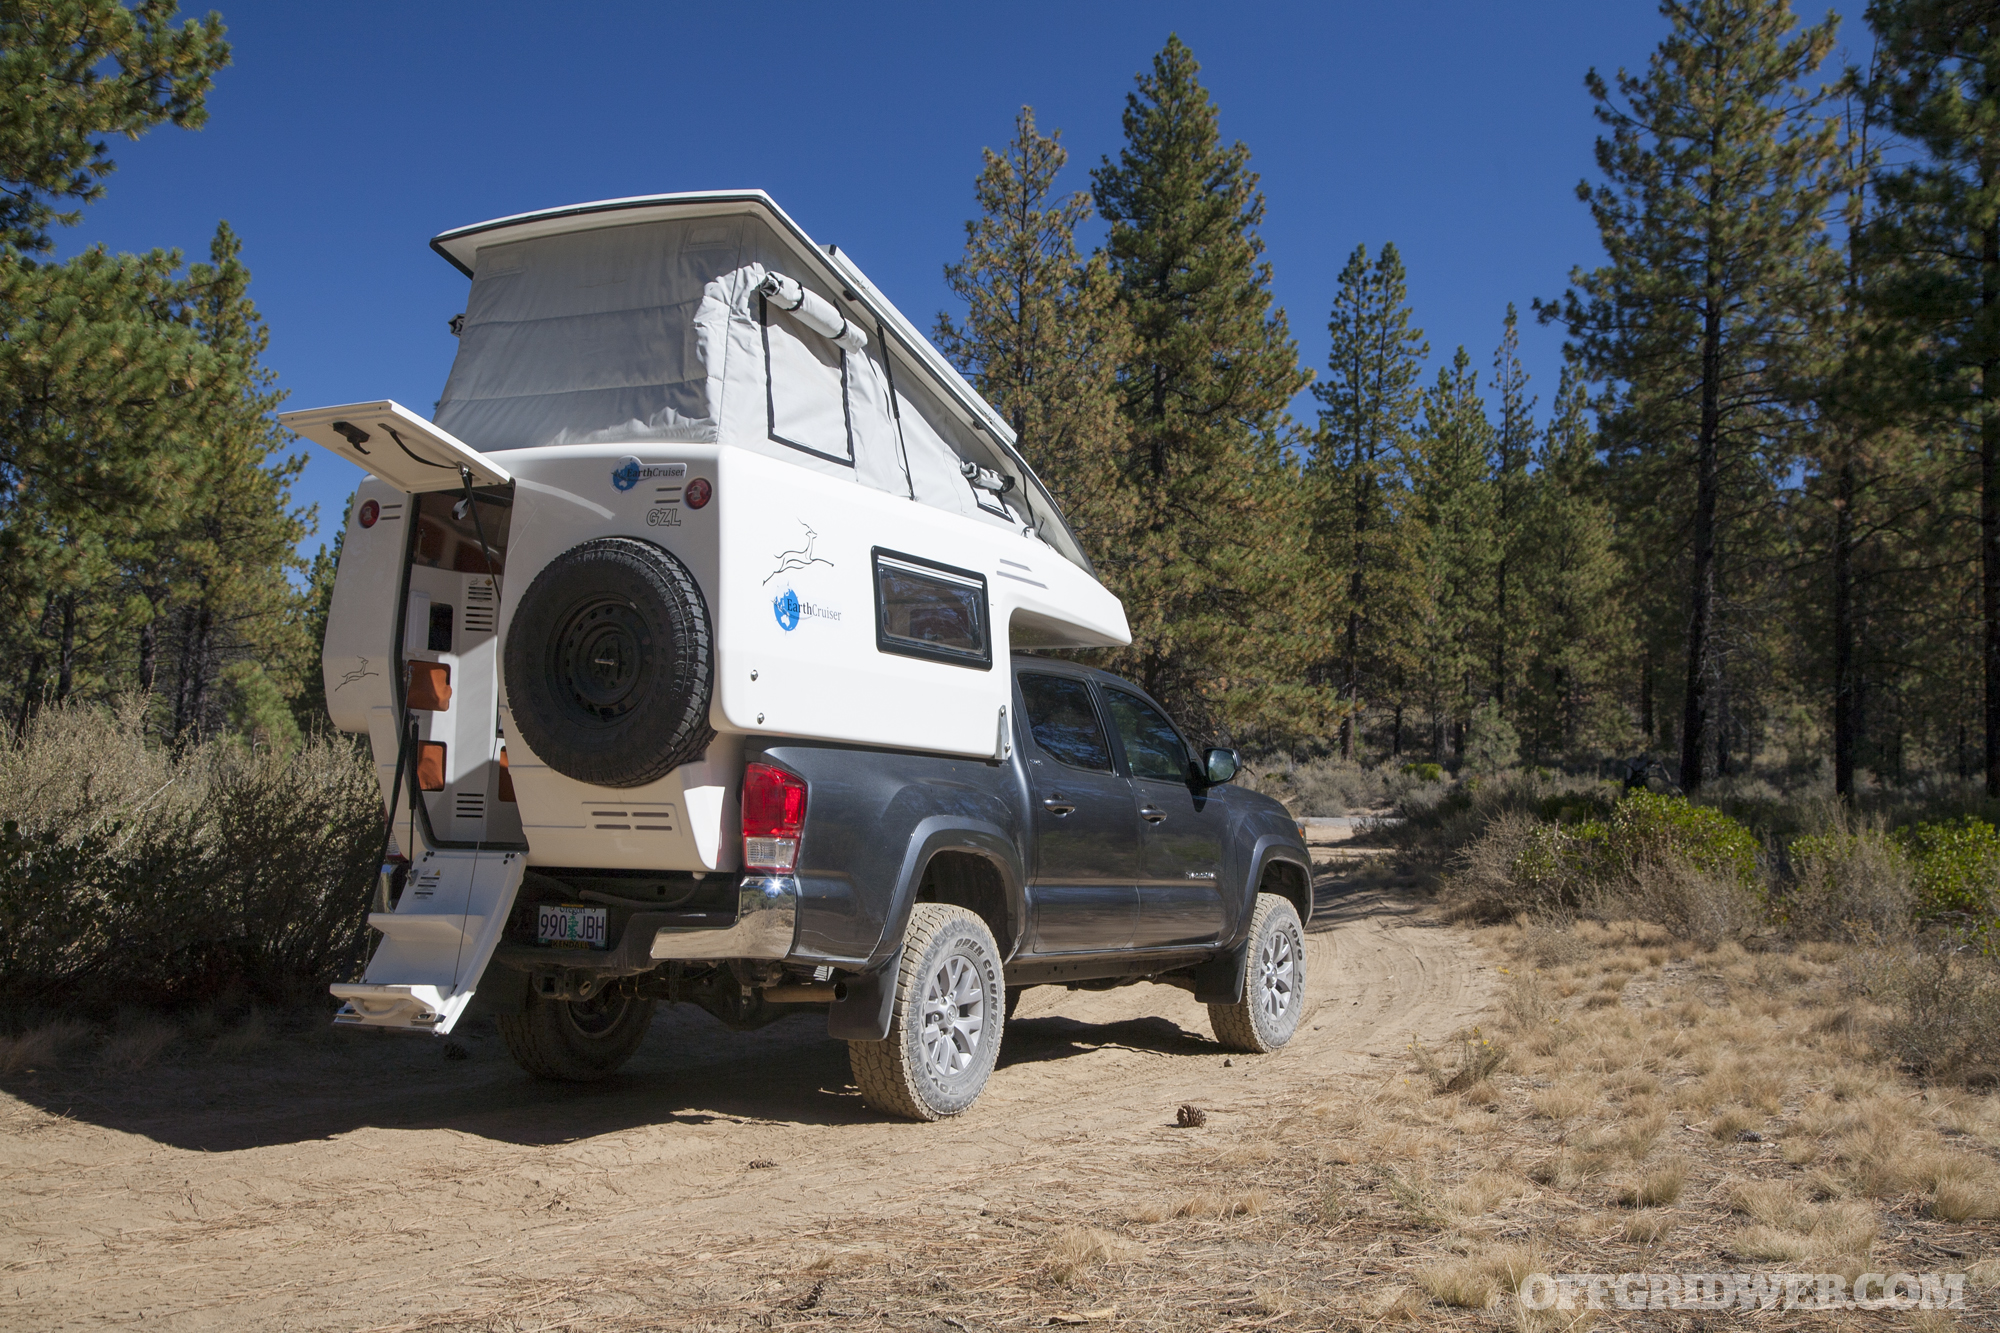 Earthcruiser GZL truck camper RV vehicle 19